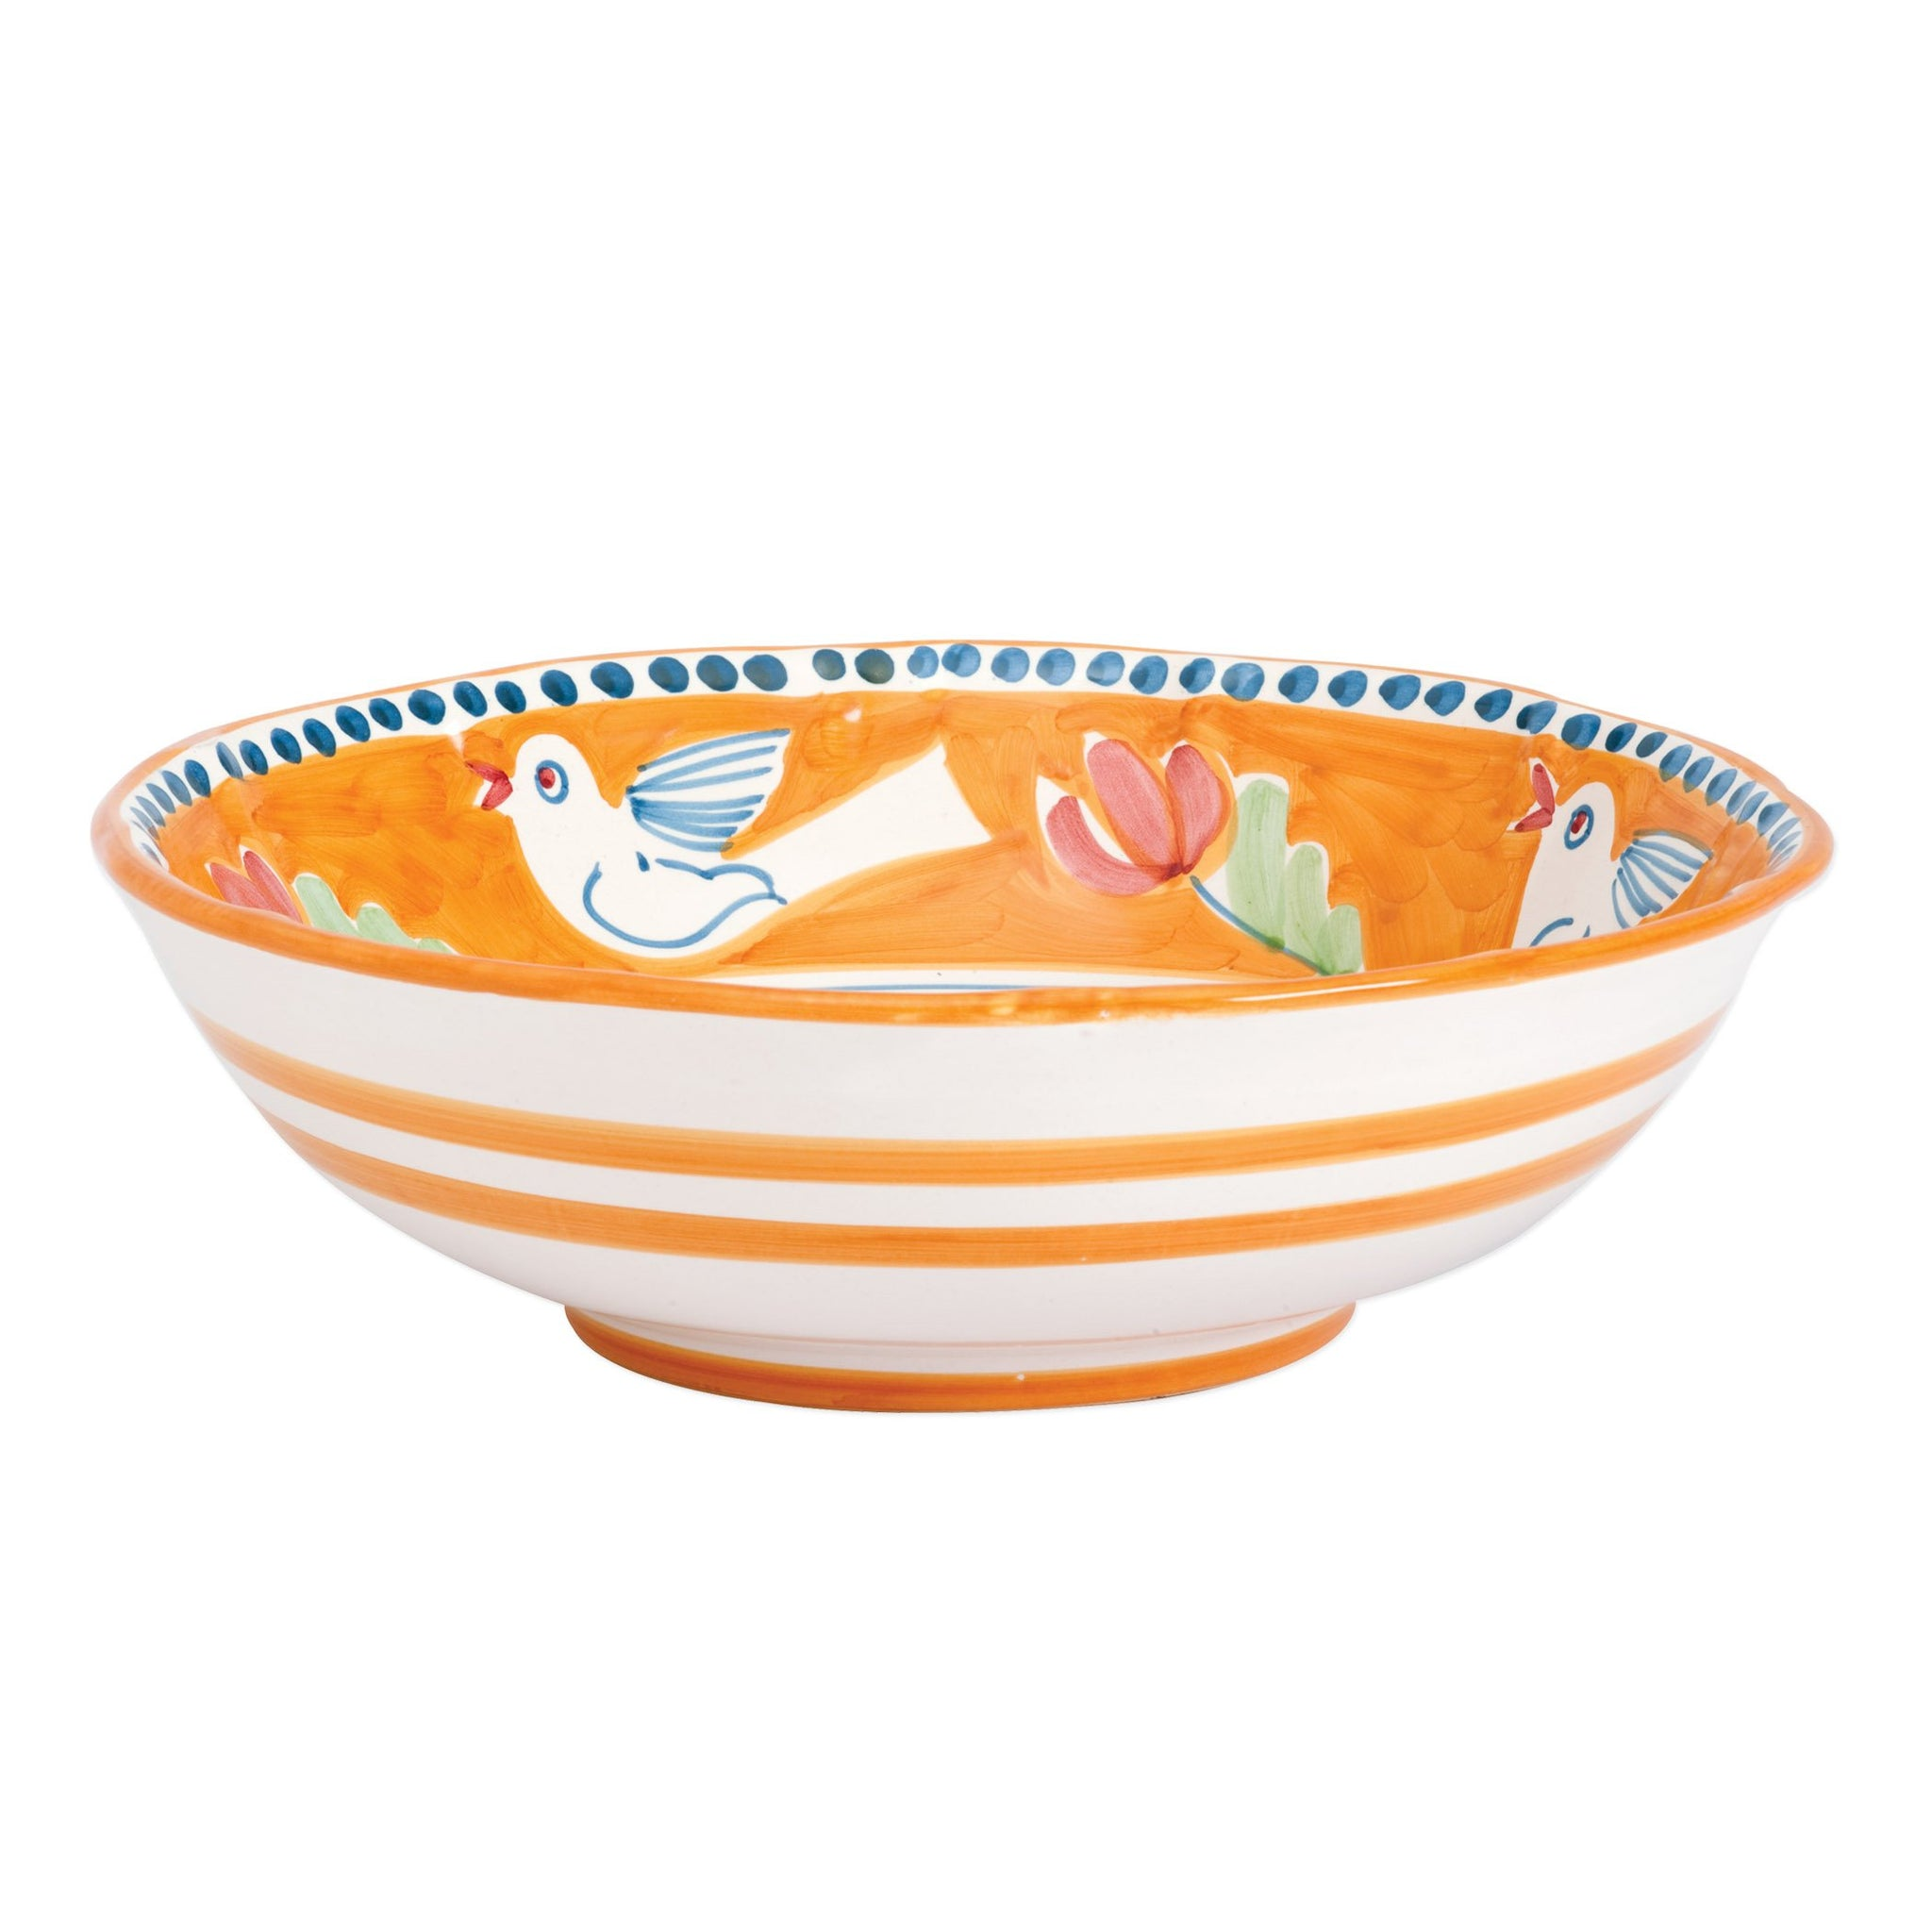 Campagna Uccello Large Serving Bowl